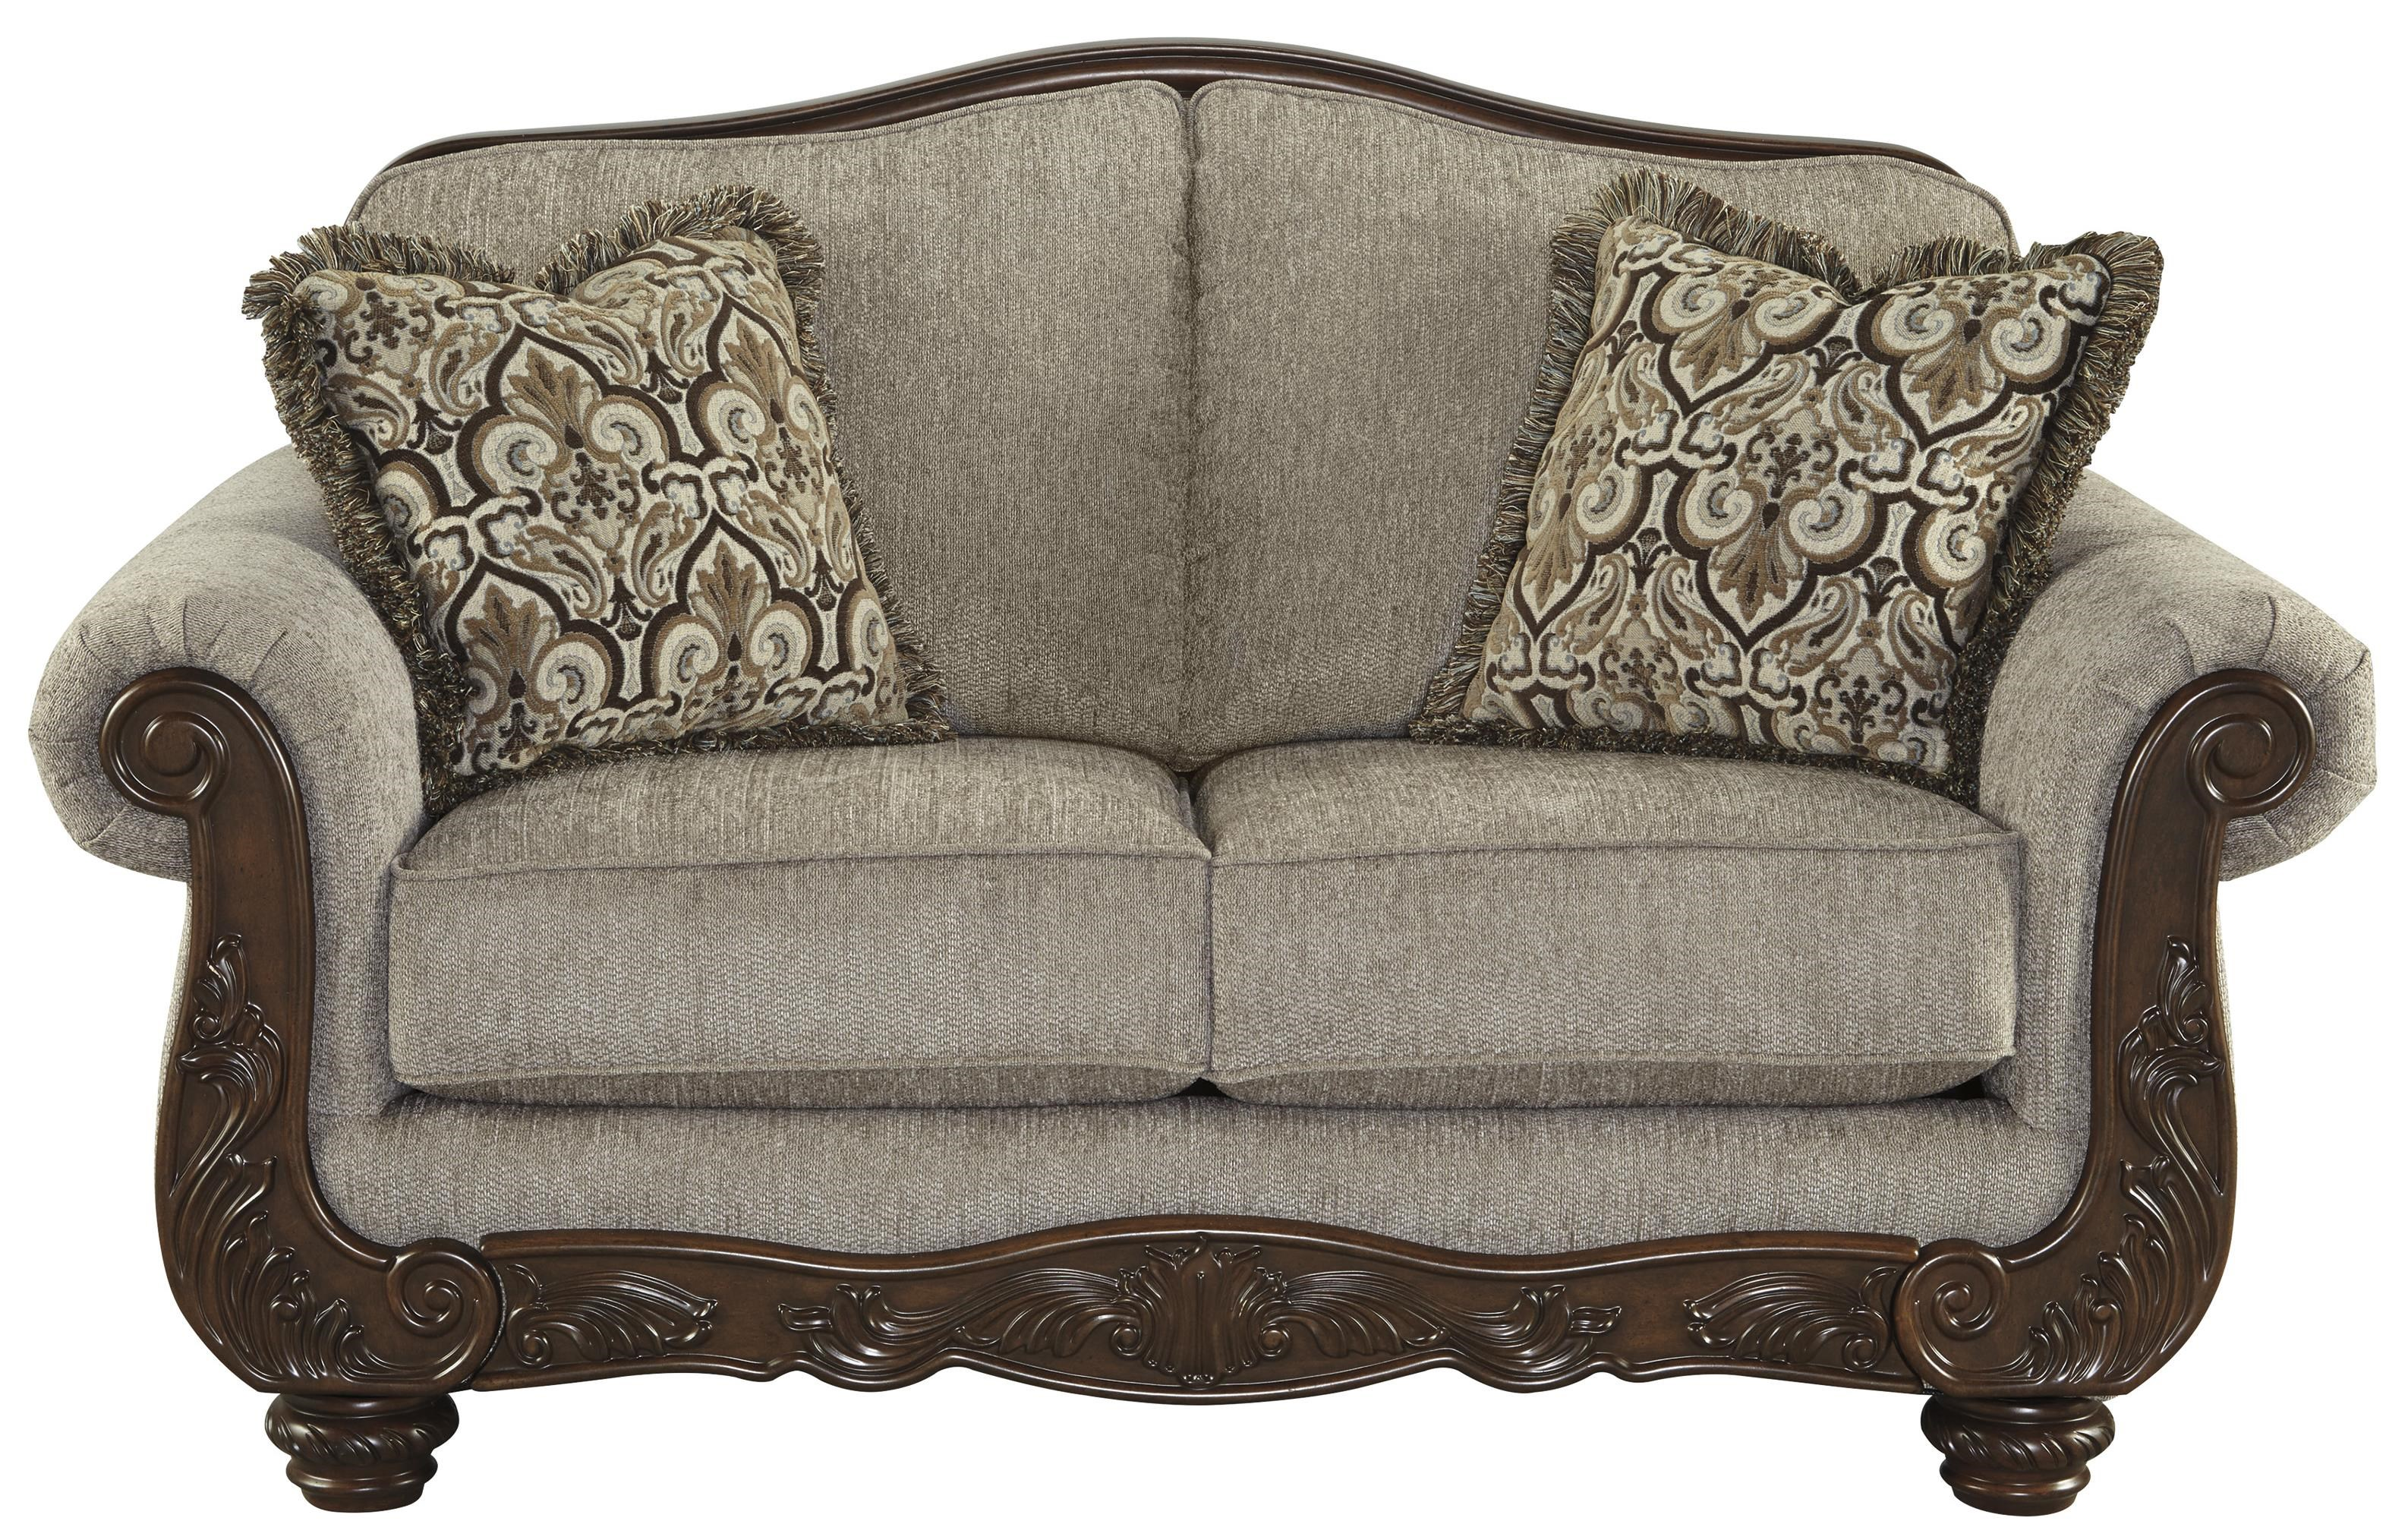 Exceptionnel Signature Design By Ashley Cedric Traditional Loveseat With Showood Trim U0026  Camel Back